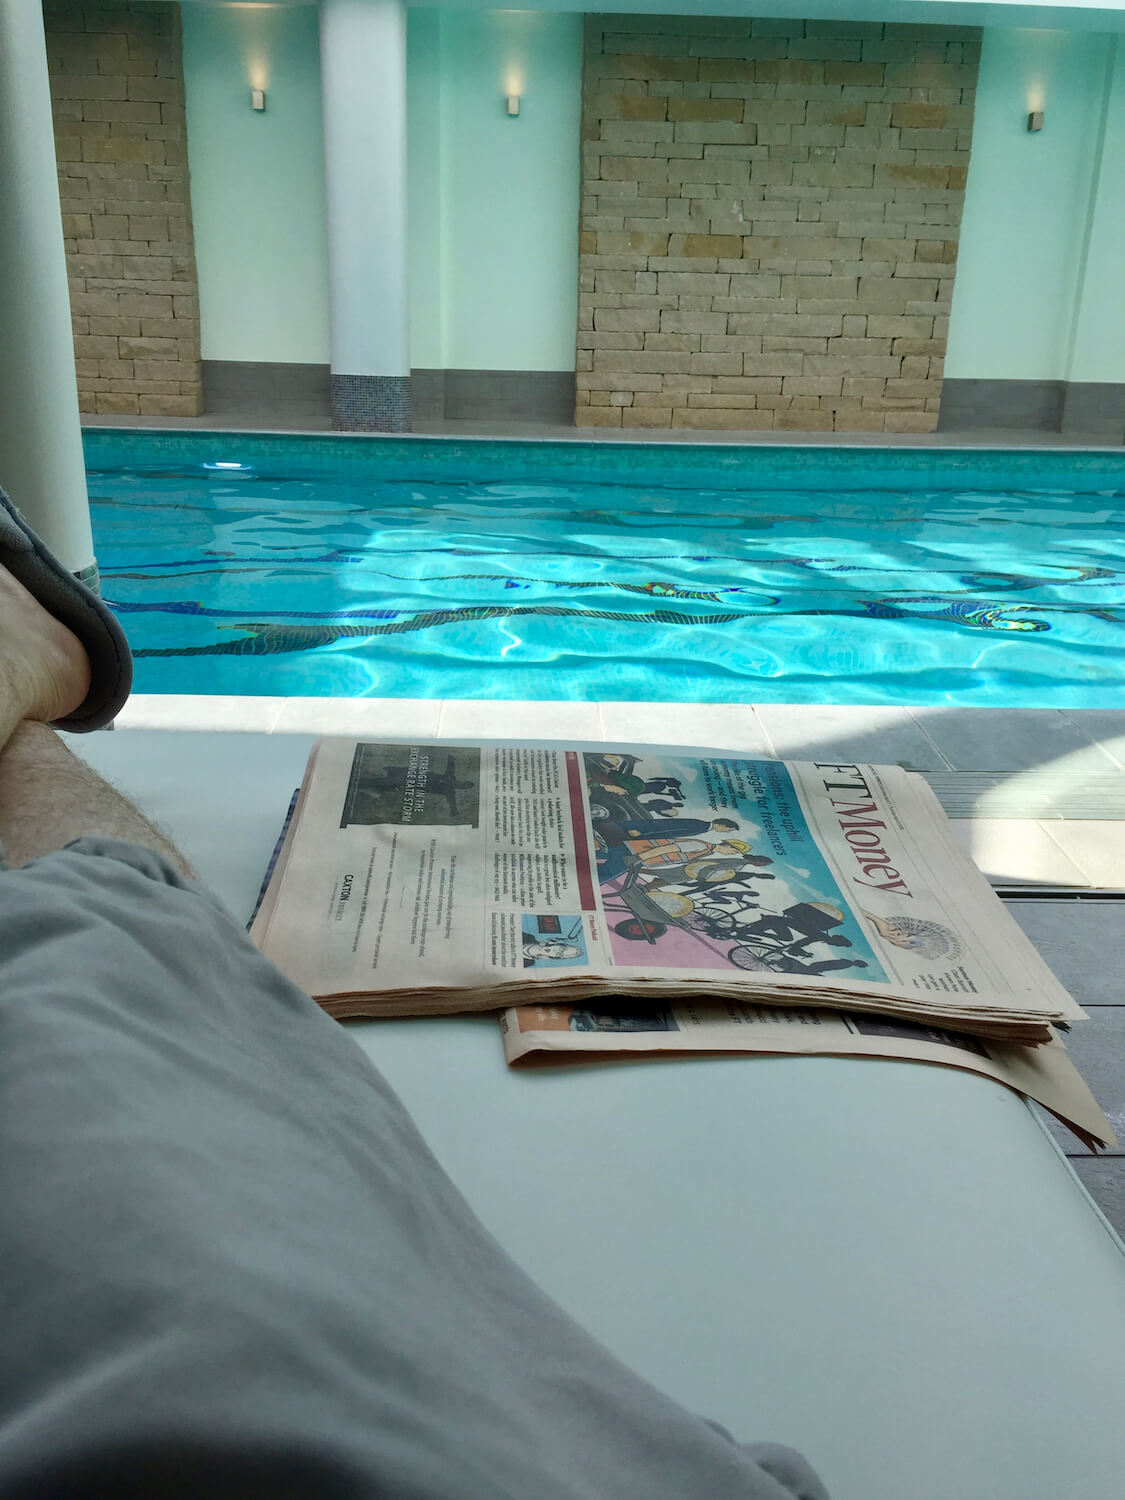 Old Course Kohlers Spa - Lounging With The Financial Times